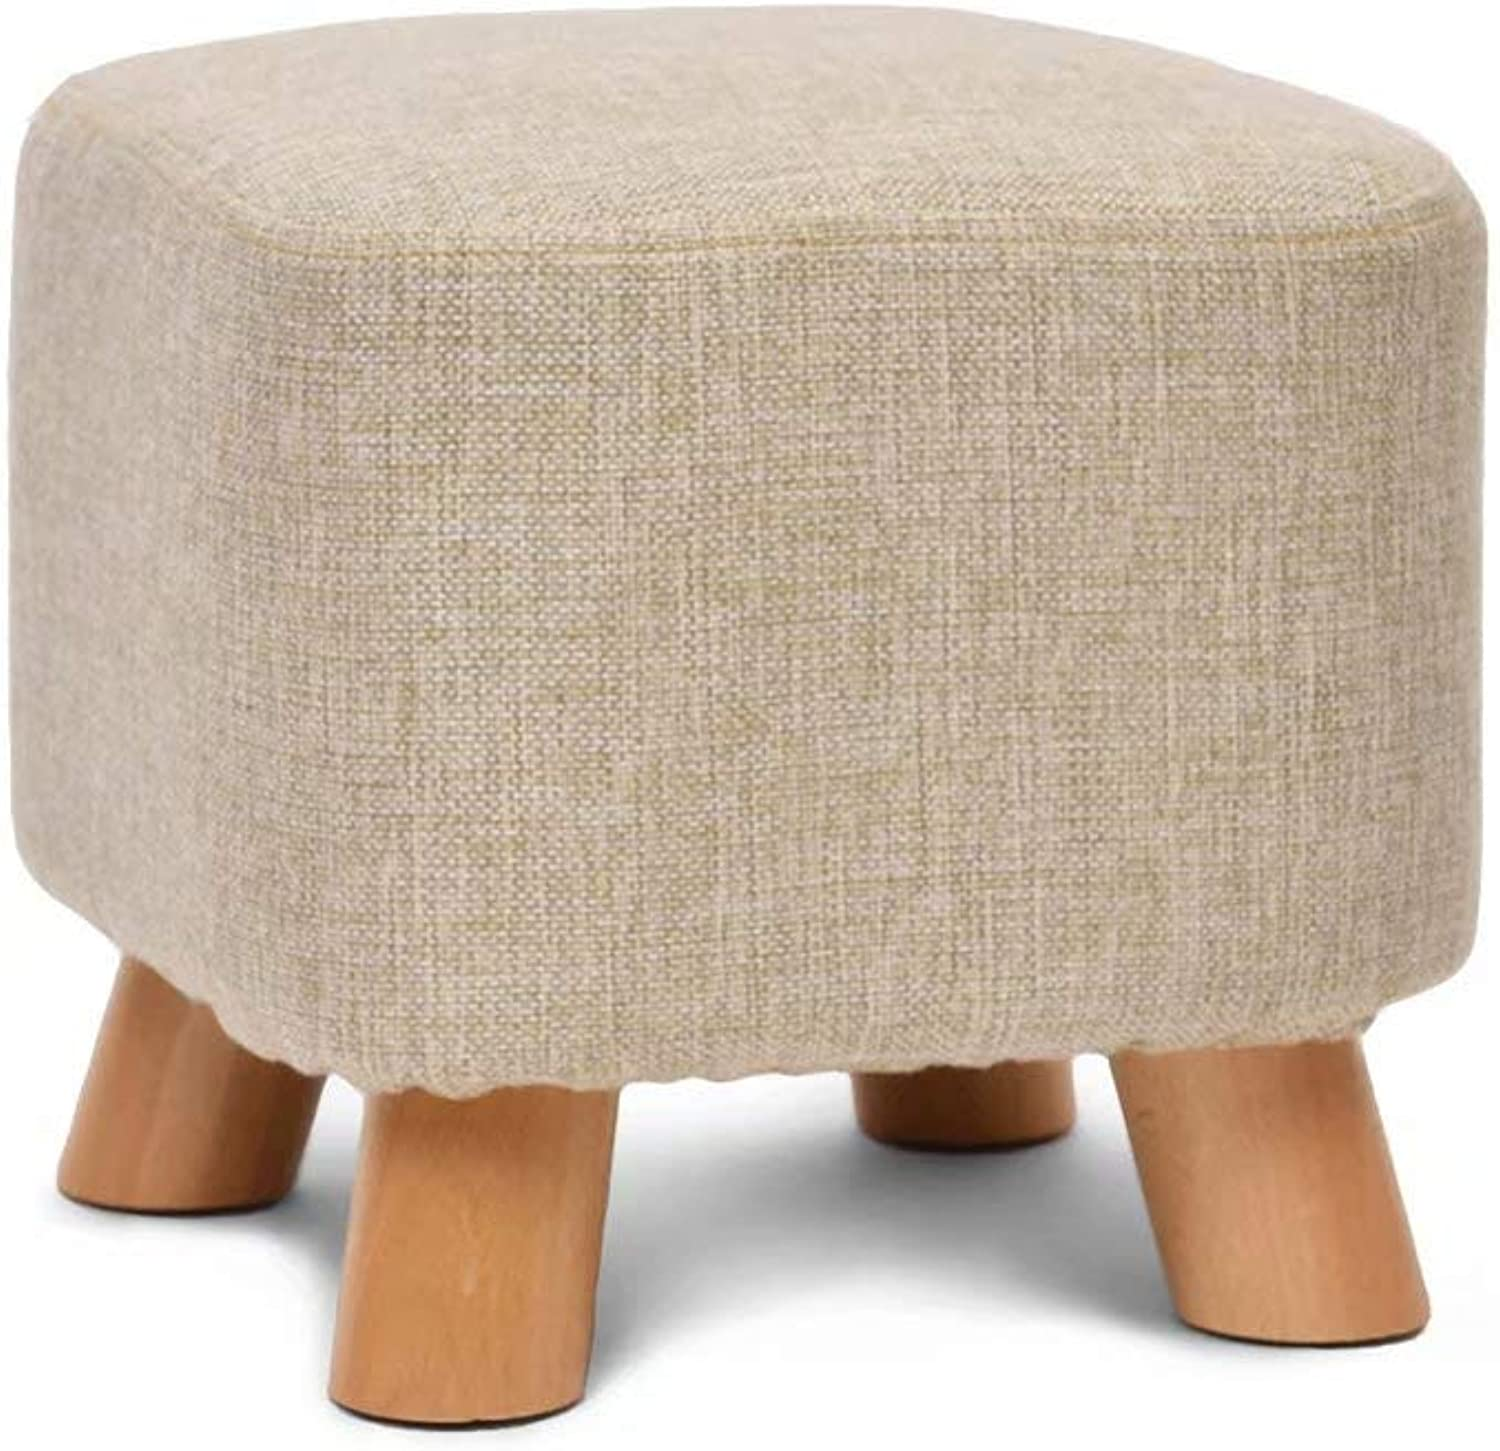 Solid Wood shoes Bench Fashion shoes Bench Creative Square Stool